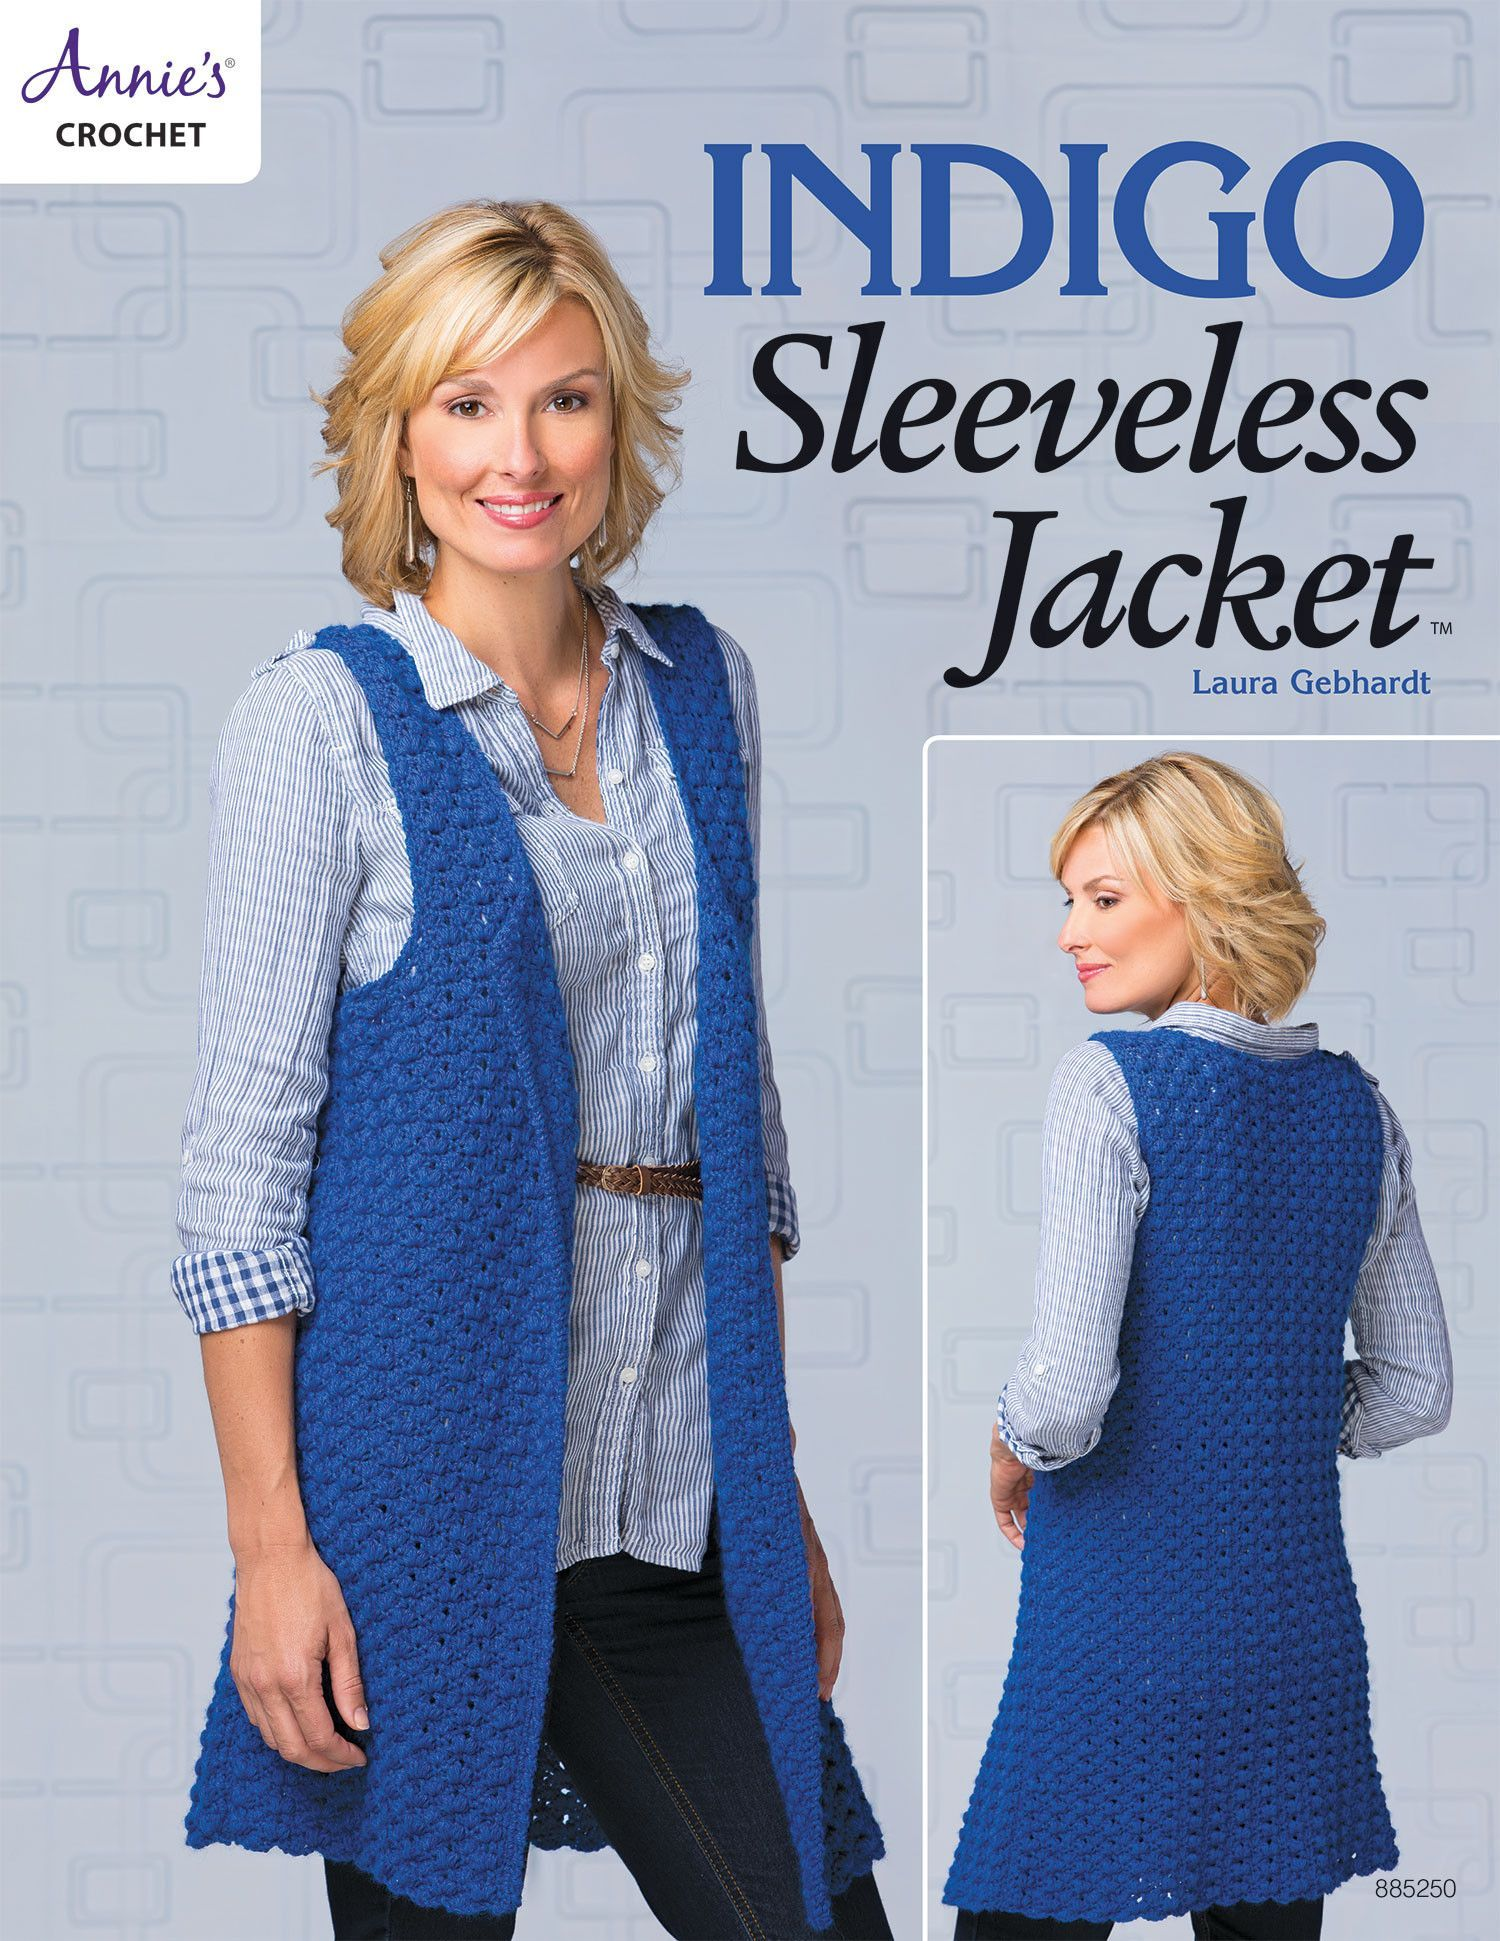 Indigo sleeveless jacket products pinterest products indigo sleeveless jacket crochet pattern leaflet stunning over leggings or a dress for office or evening sizes bankloansurffo Gallery